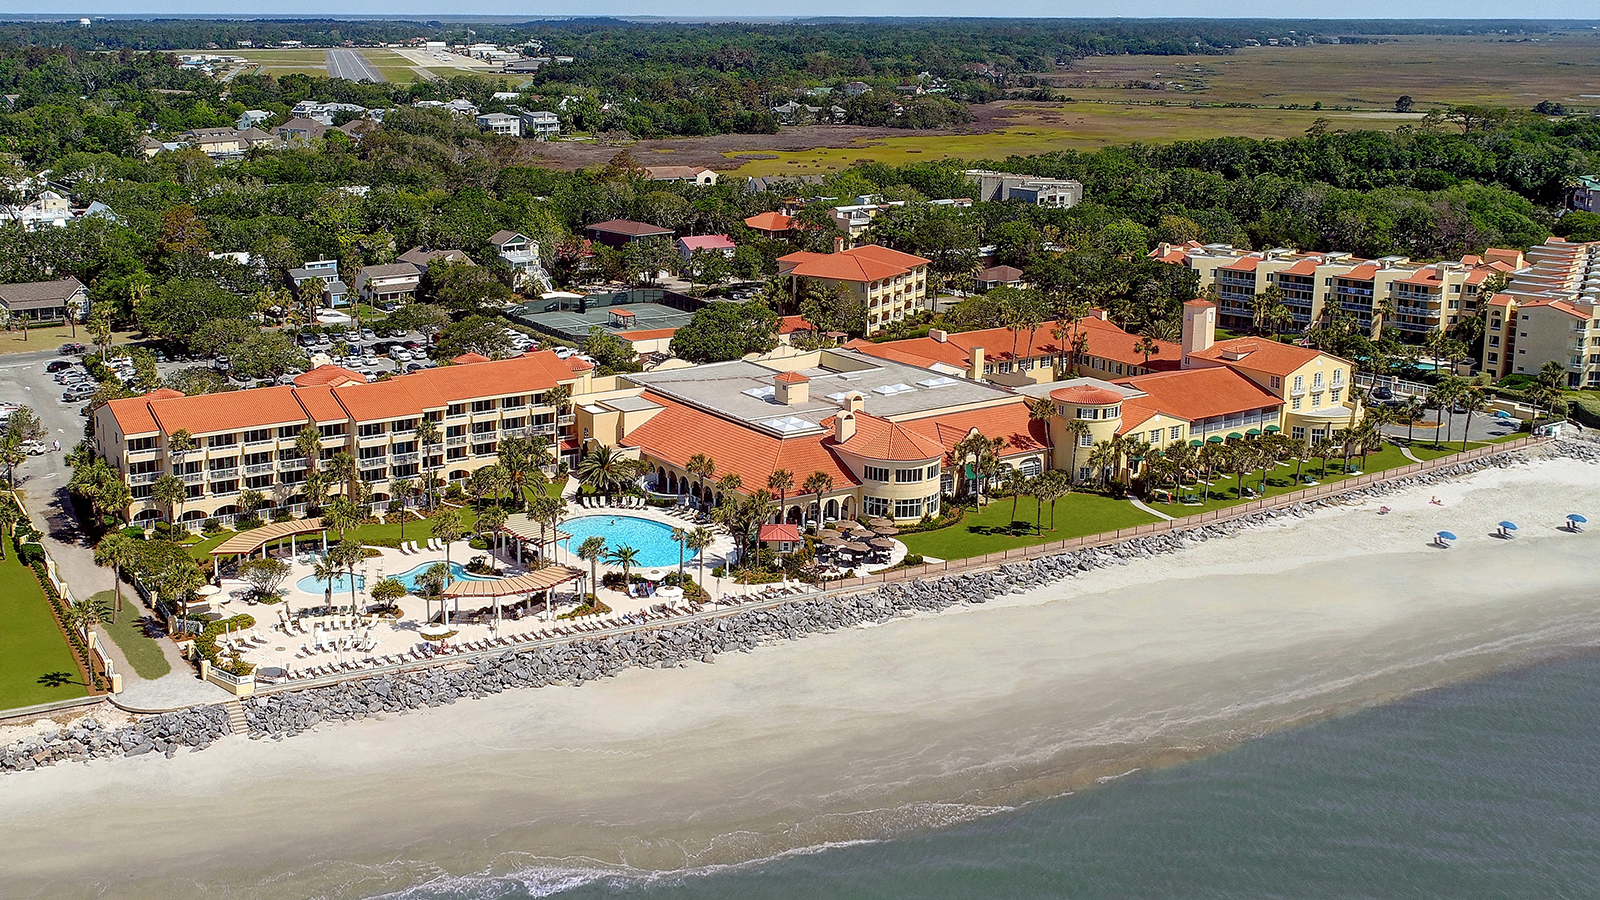 Image of Hotel Exterior The King and Prince Beach and Golf Resort, 1935, Member of Historic Hotels of America, on St. Simons Island, Georgia, Overview